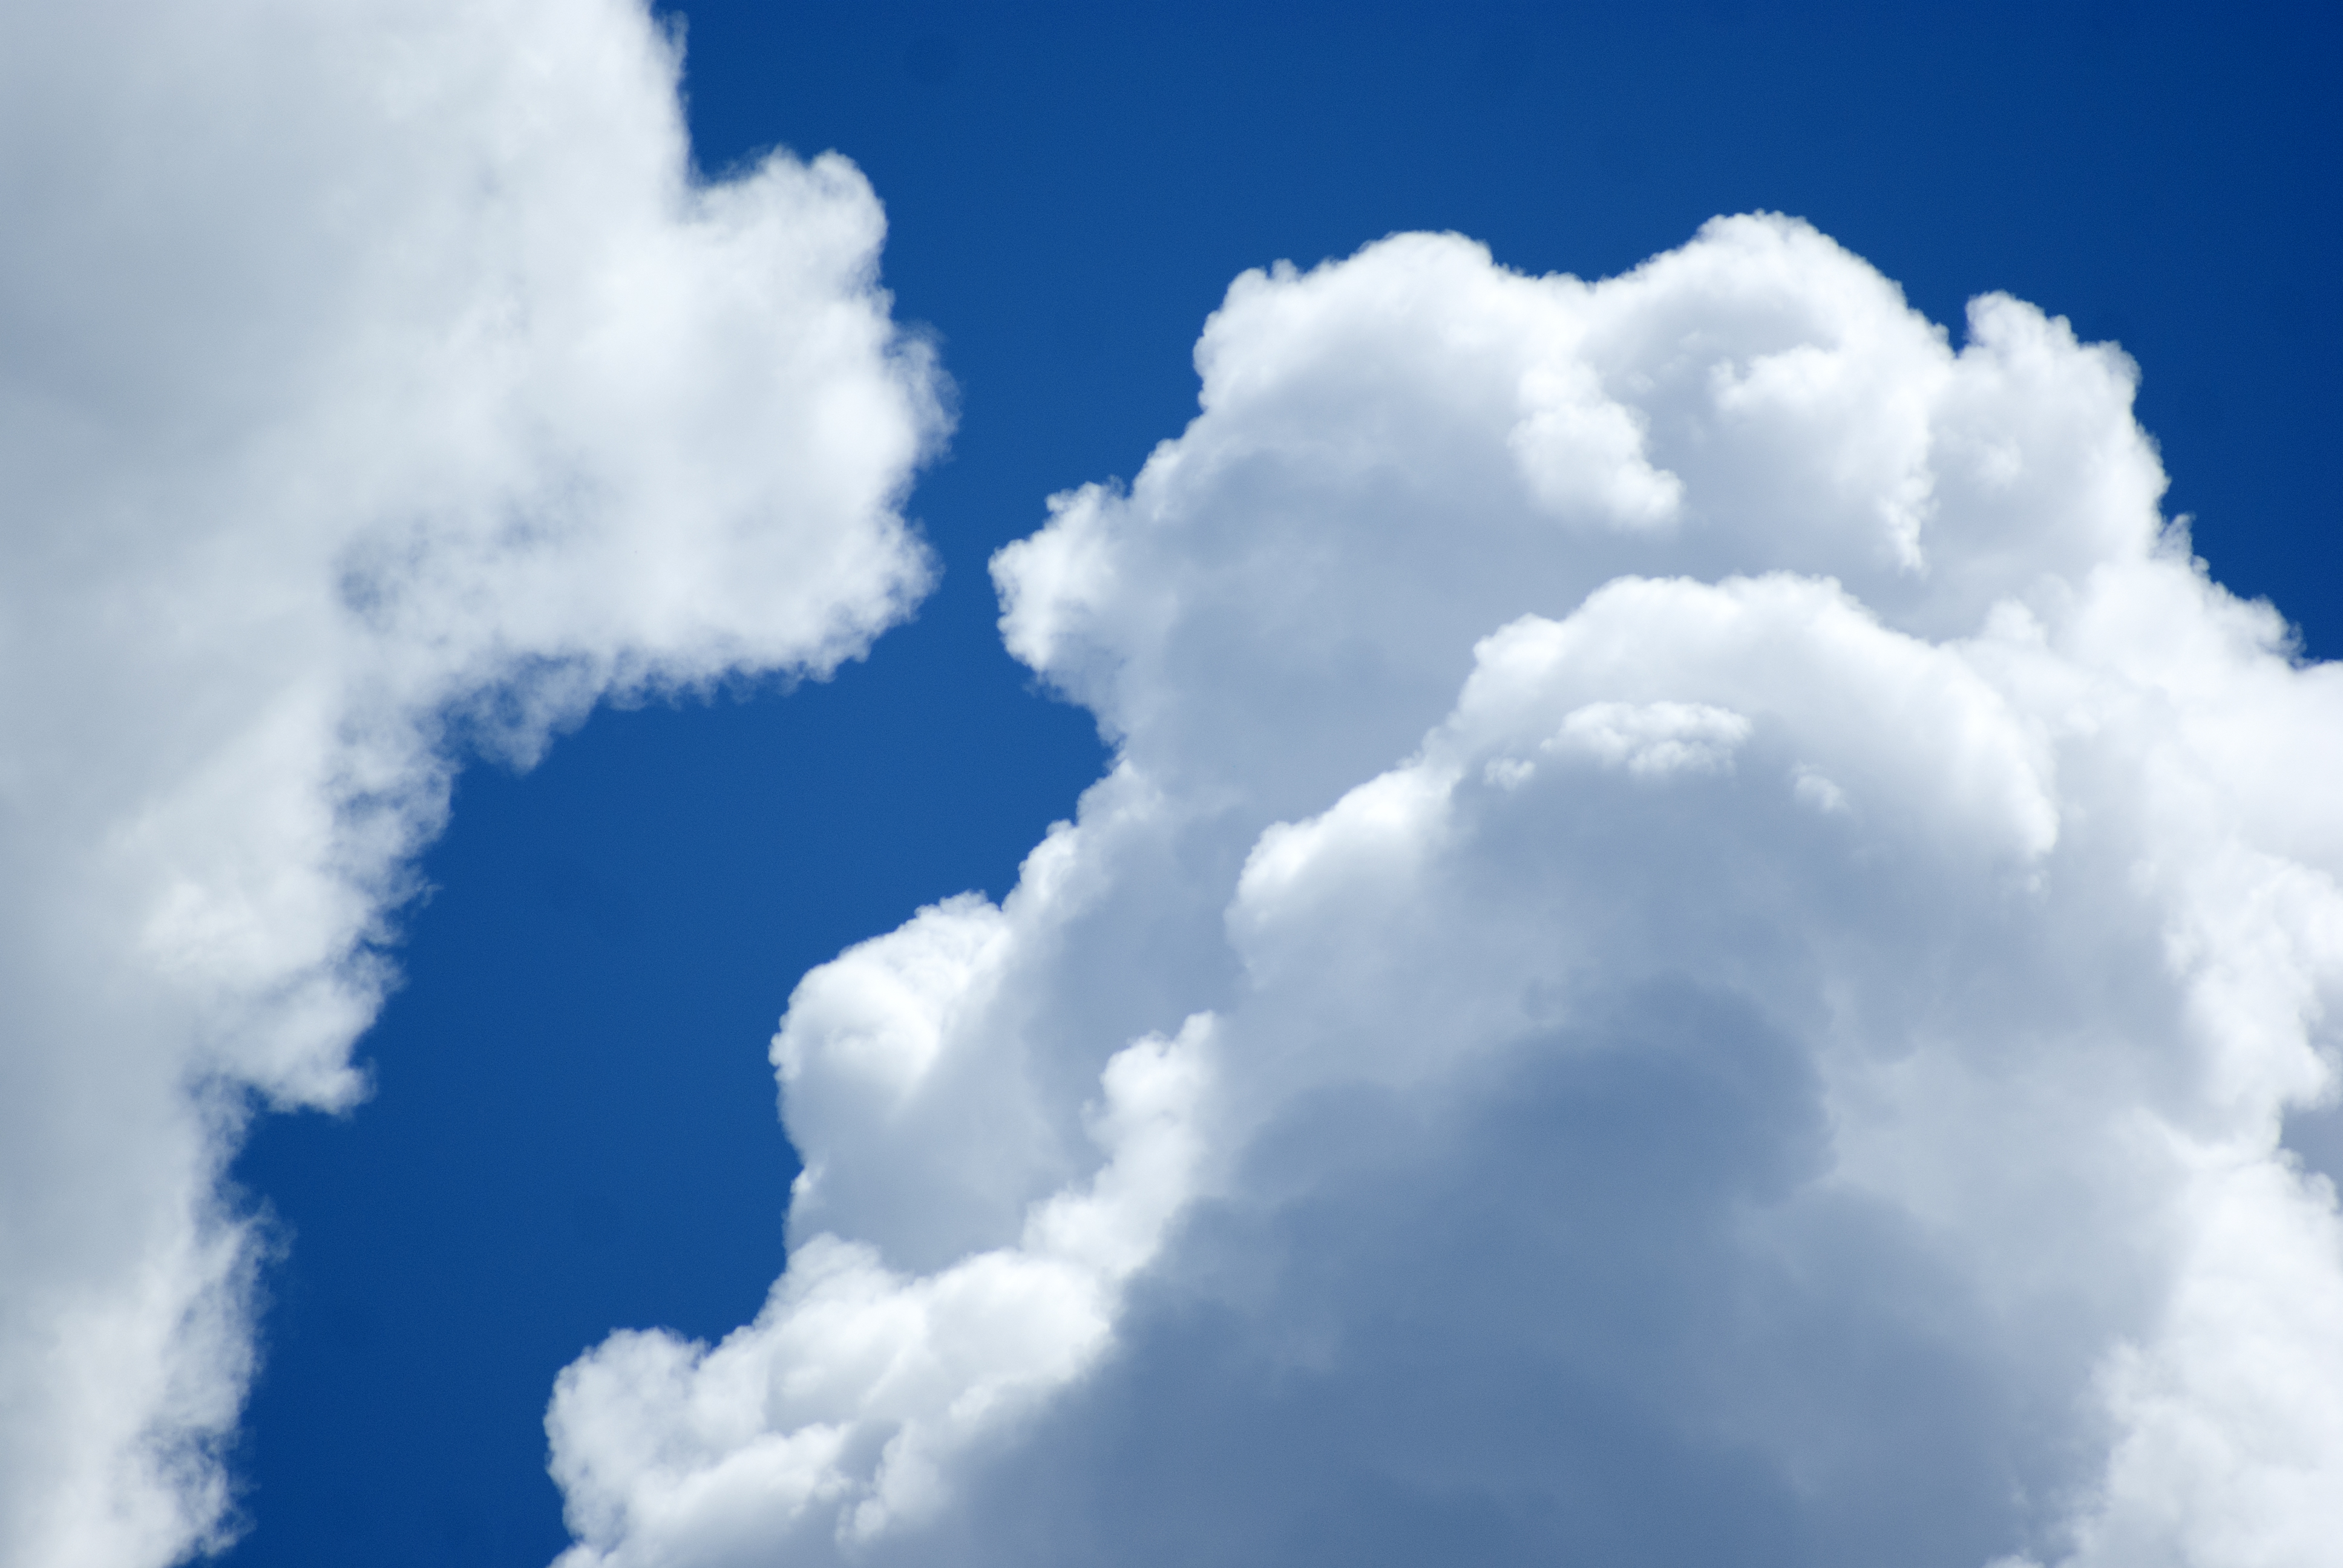 Large Puffy Clouds, Abstract, Landscape, View, Travel, HQ Photo